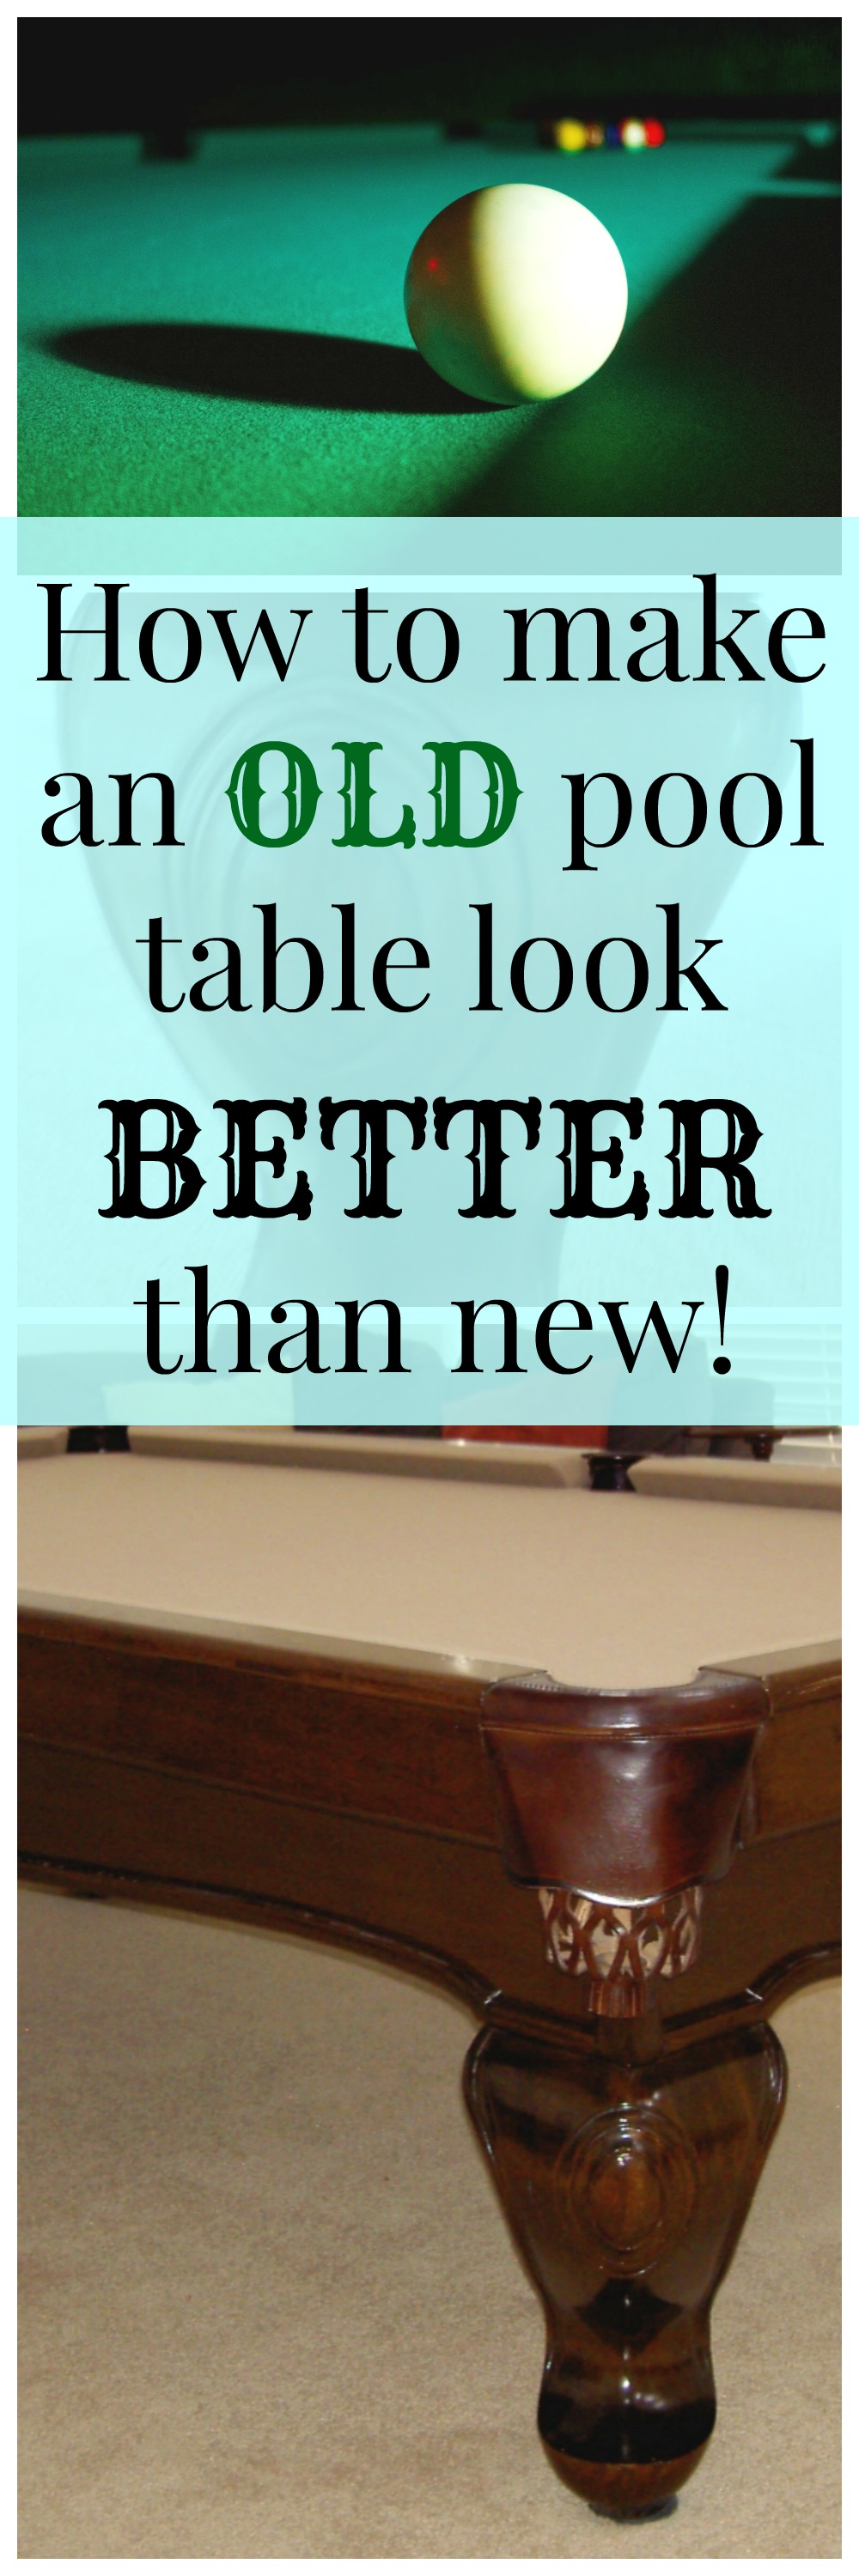 DIY Pool Table. How To Refinish, Stain And Re Felt A Pool Table